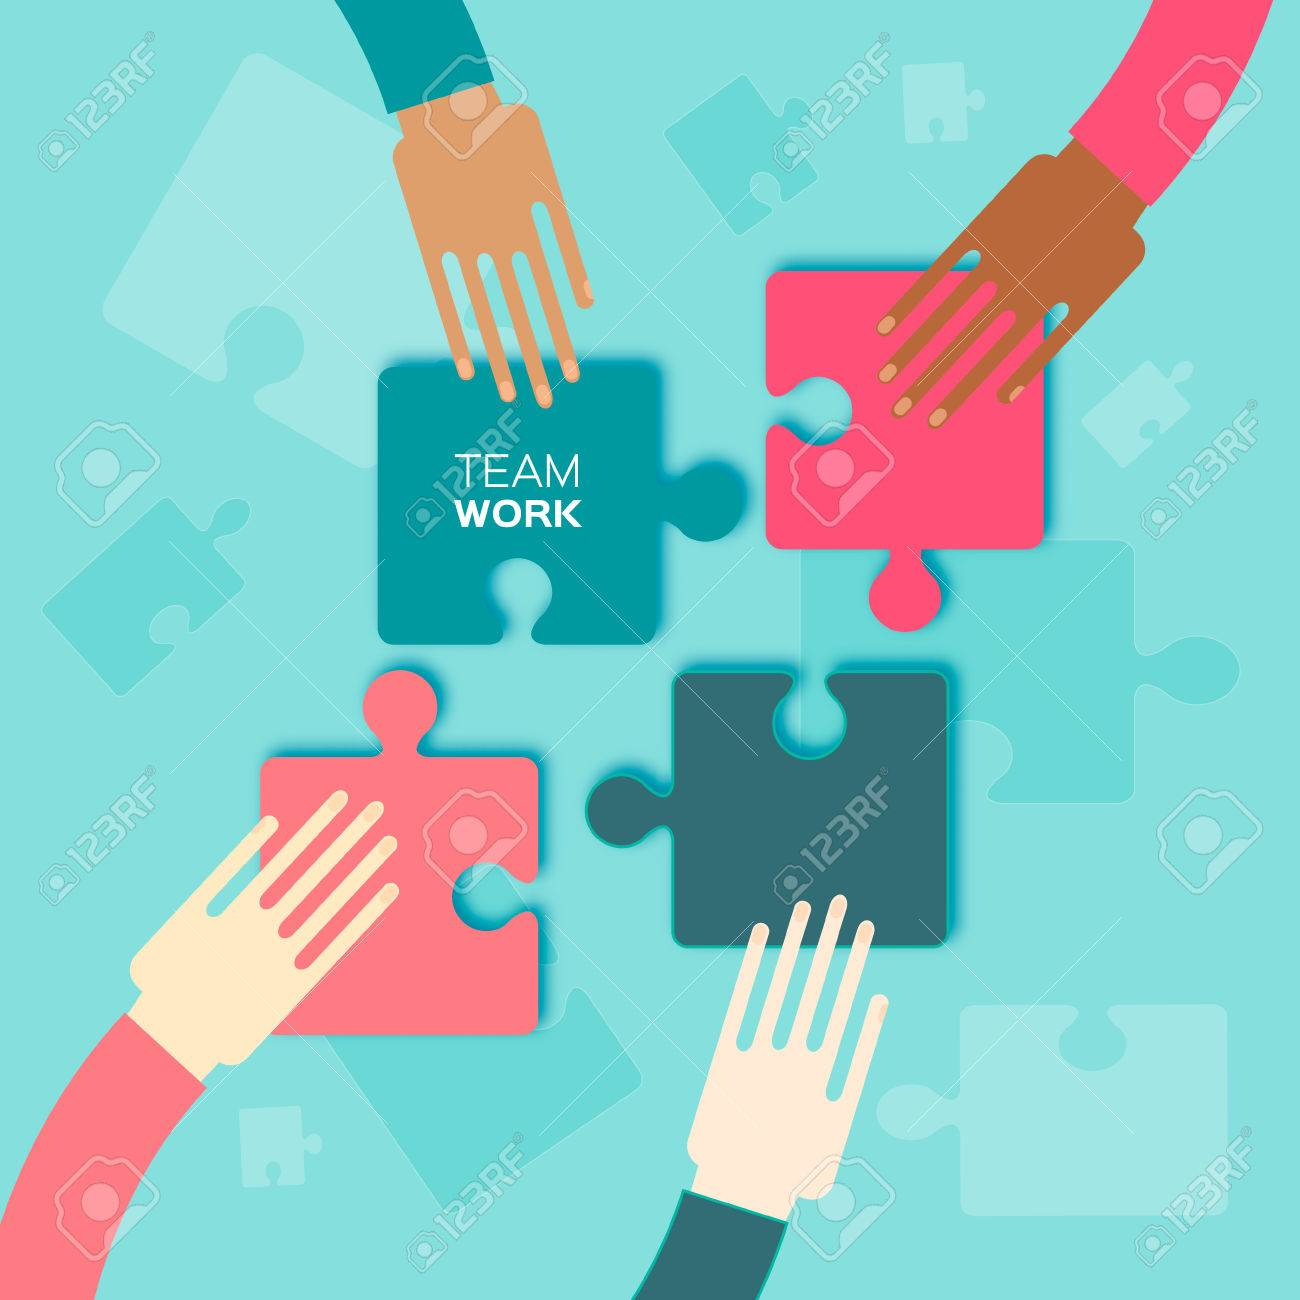 Four Hands Together Team Work Putting Puzzle Pieces Teamwork And Bussiness Concept